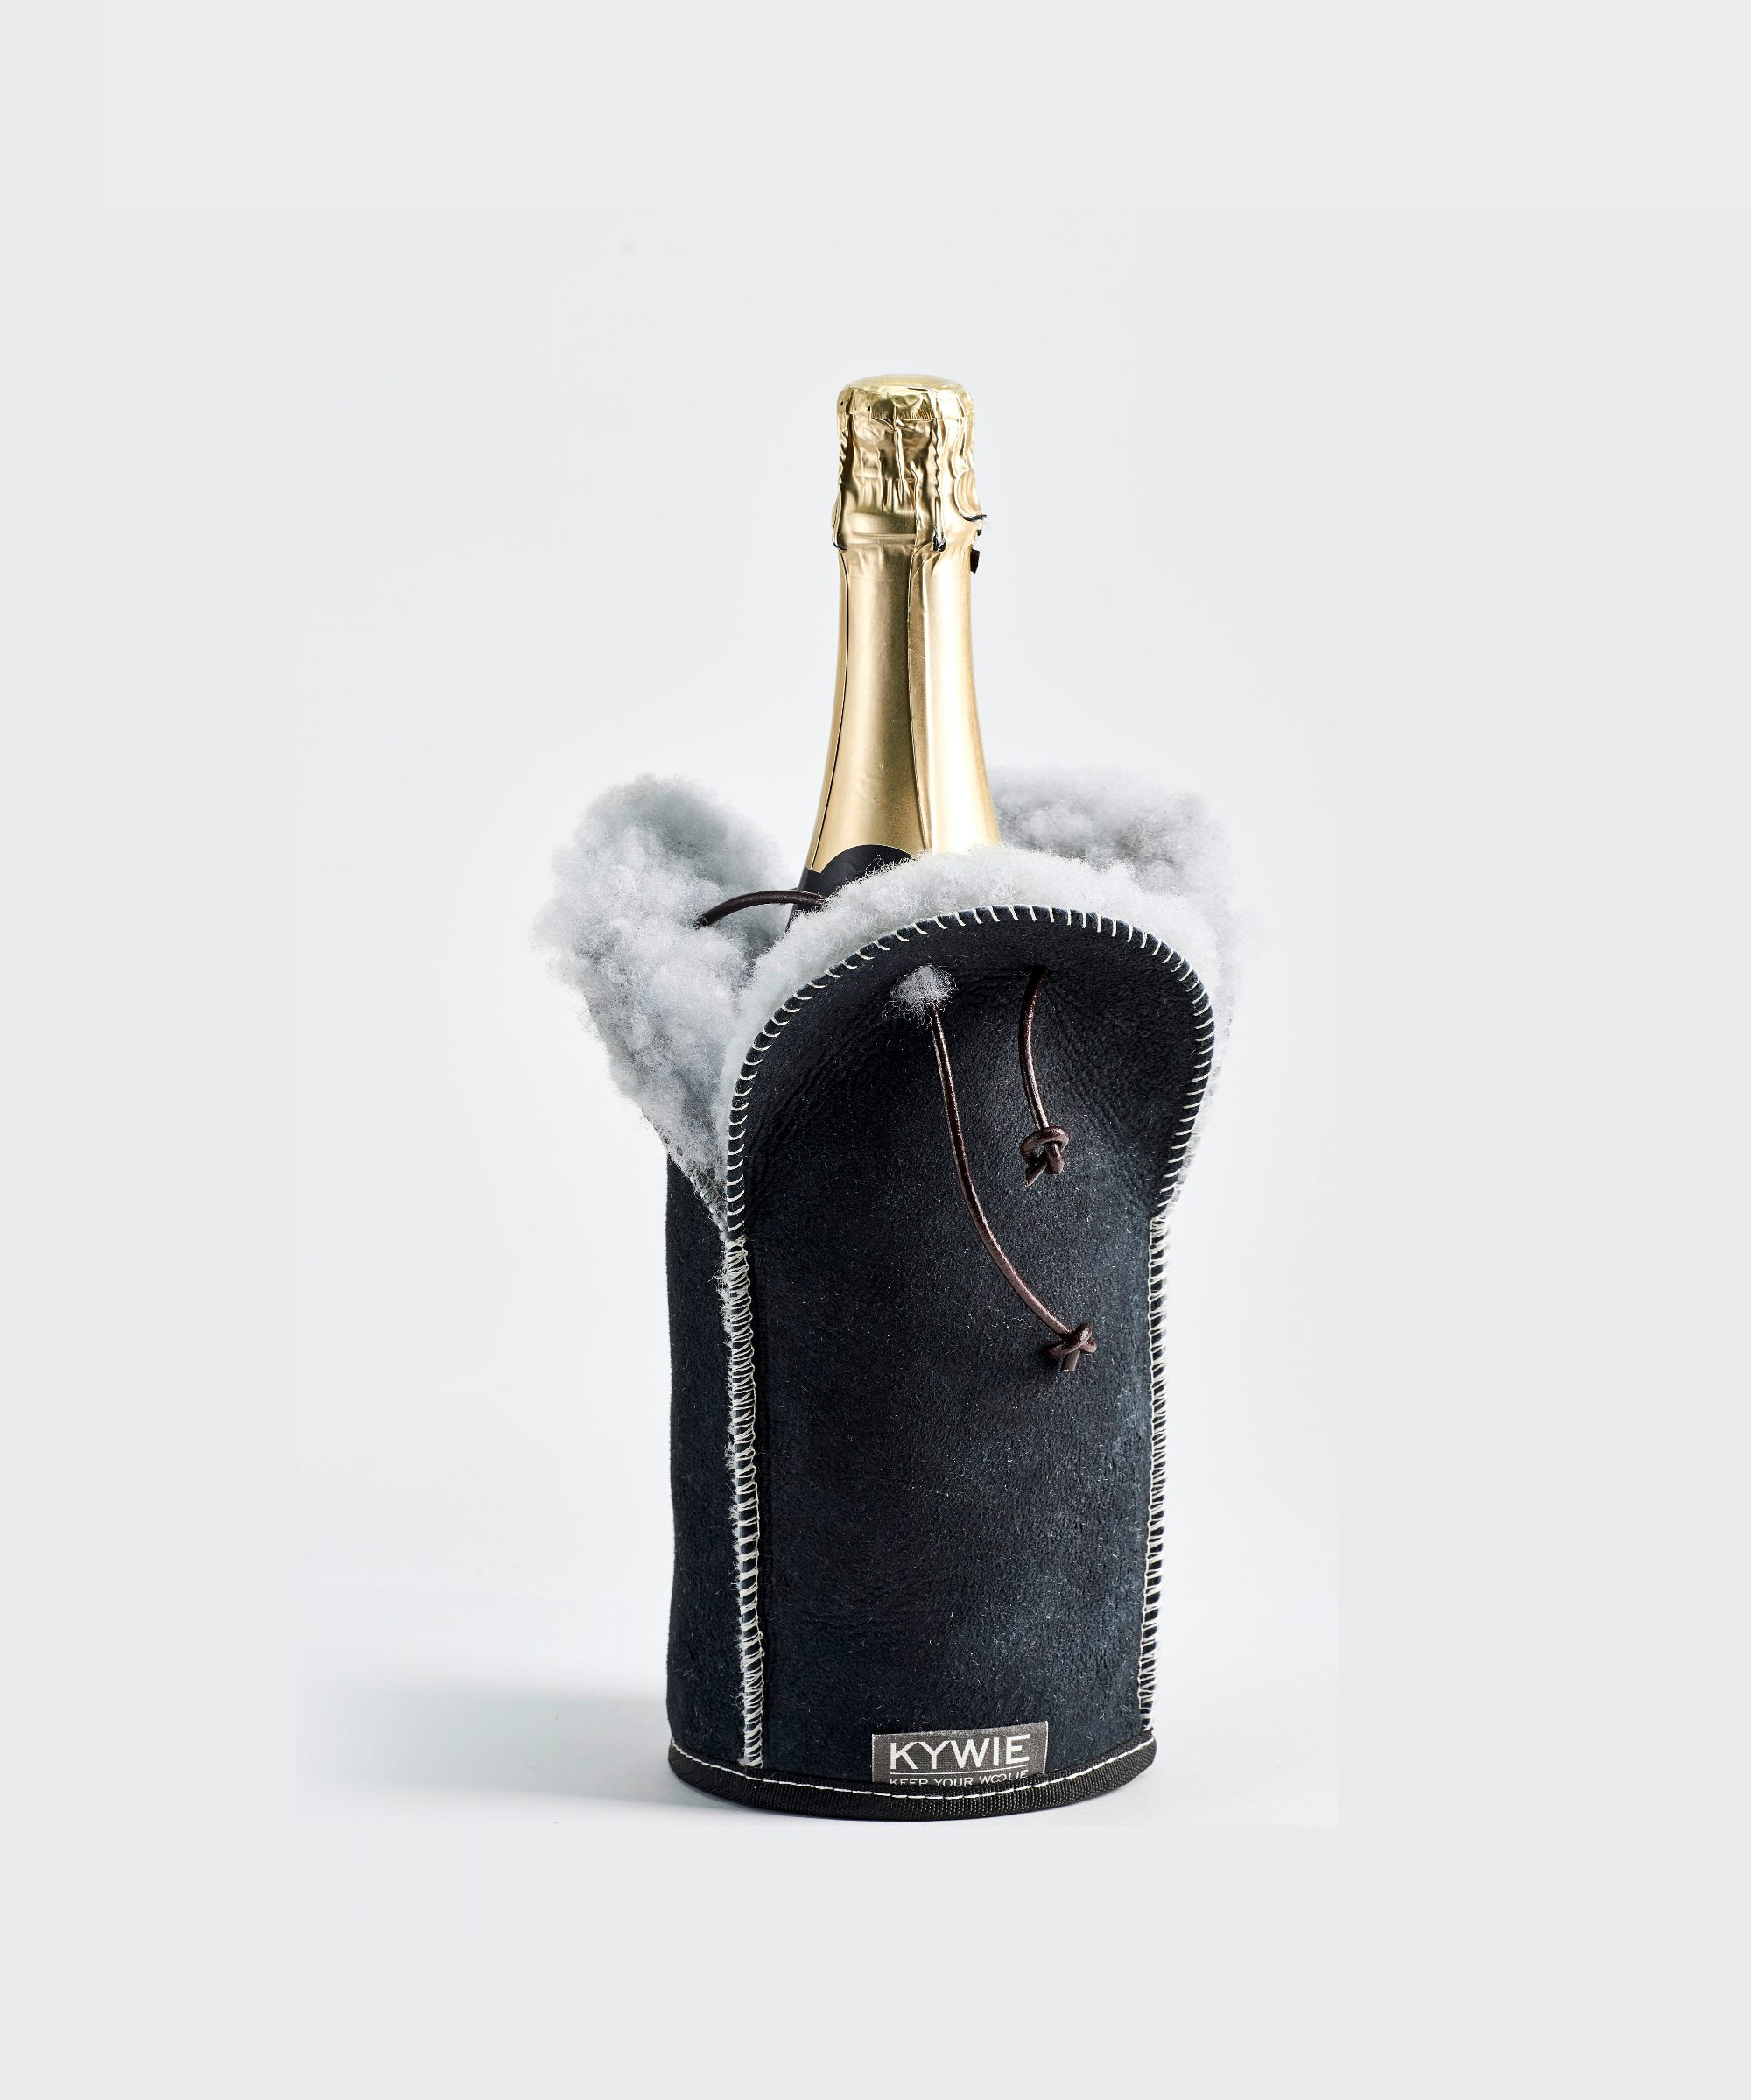 champagne bottle insertion champagne and wine cooler make of sheepskin with Taittinger champagne on  the table